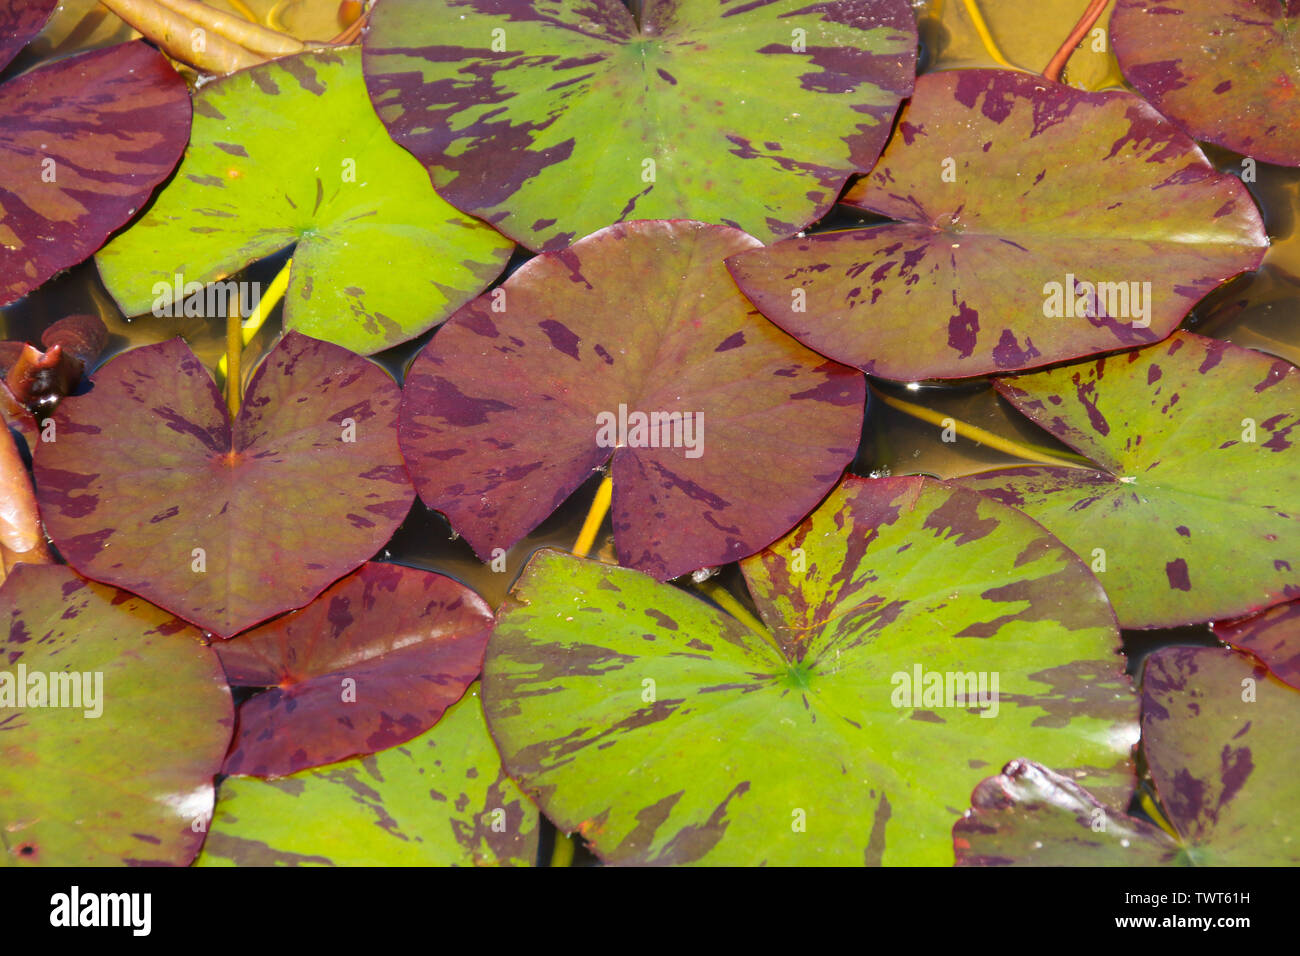 An abstract natural background of brown, red and green variegated lily leaves floating on the surface of the water in a pond Stock Photo